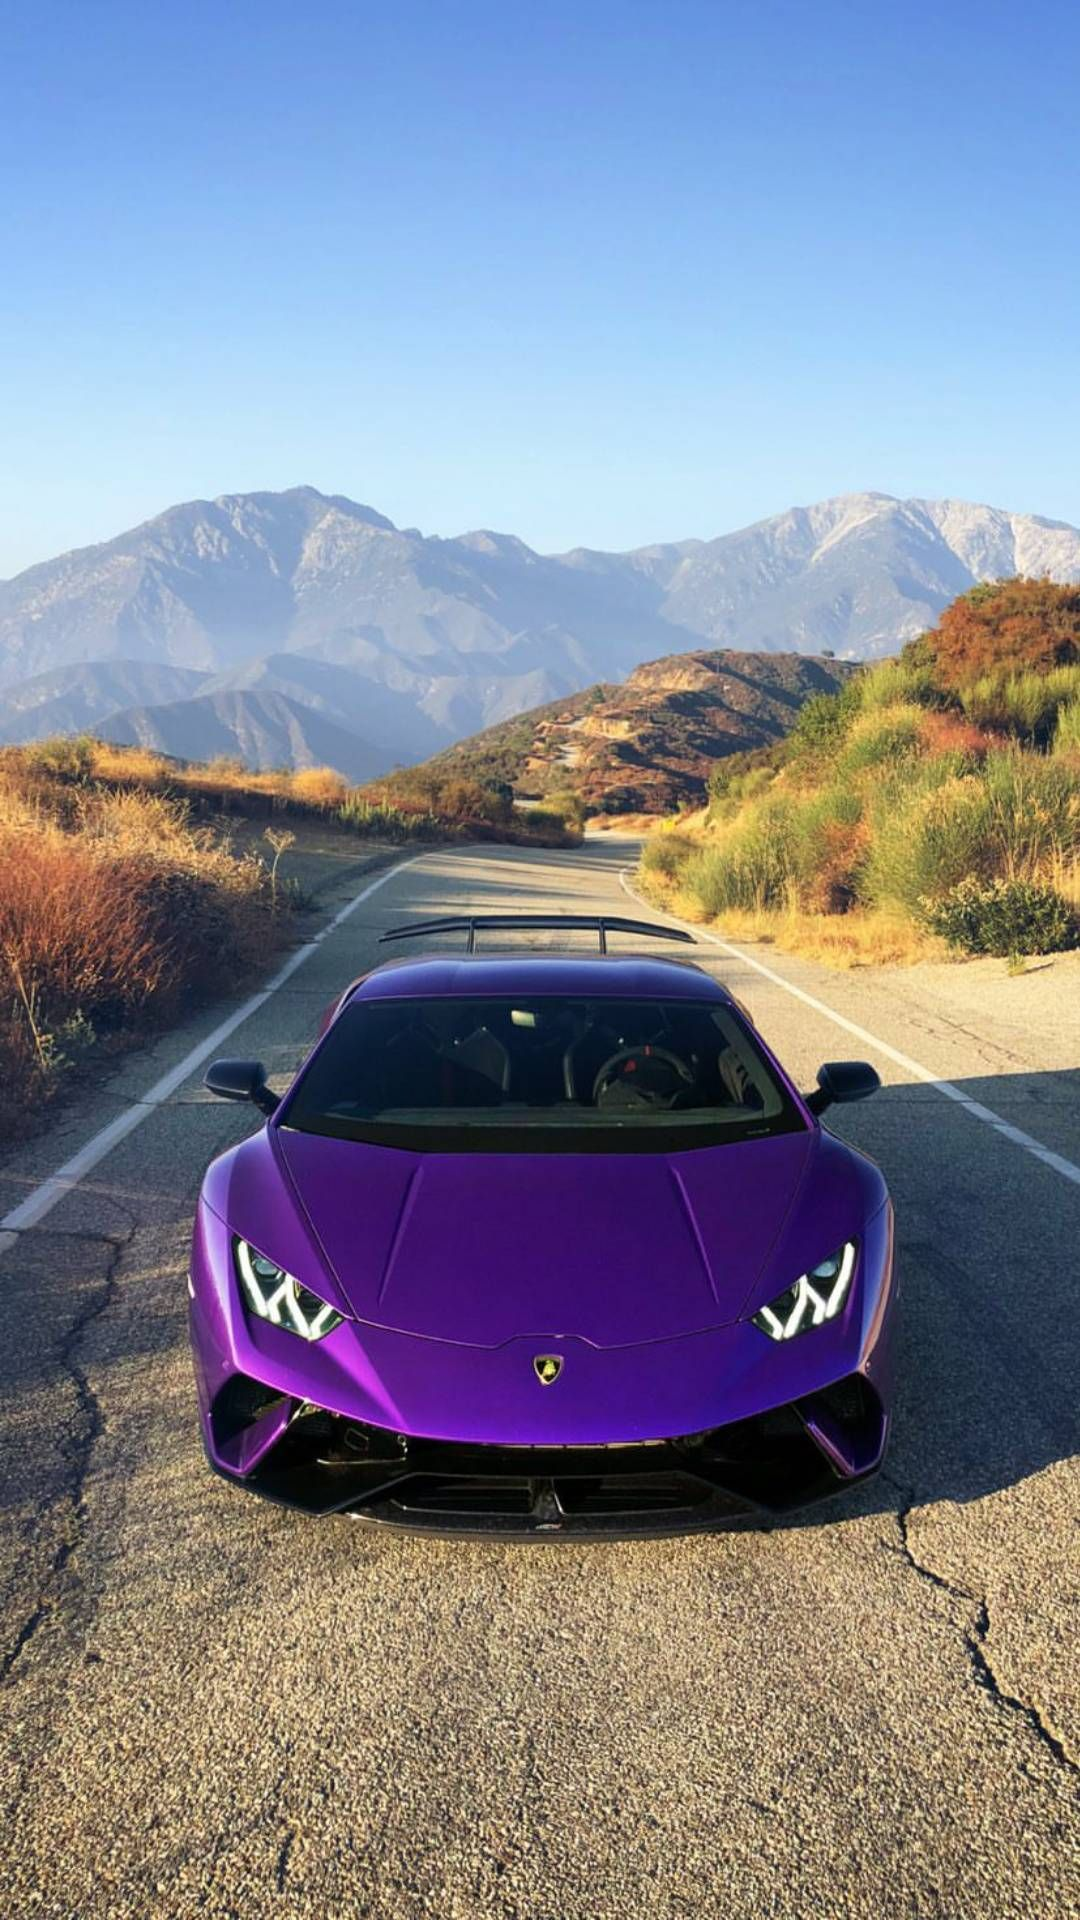 Purple Lambo Iphone Wallpaper Lamborghini Cars Top Luxury Cars